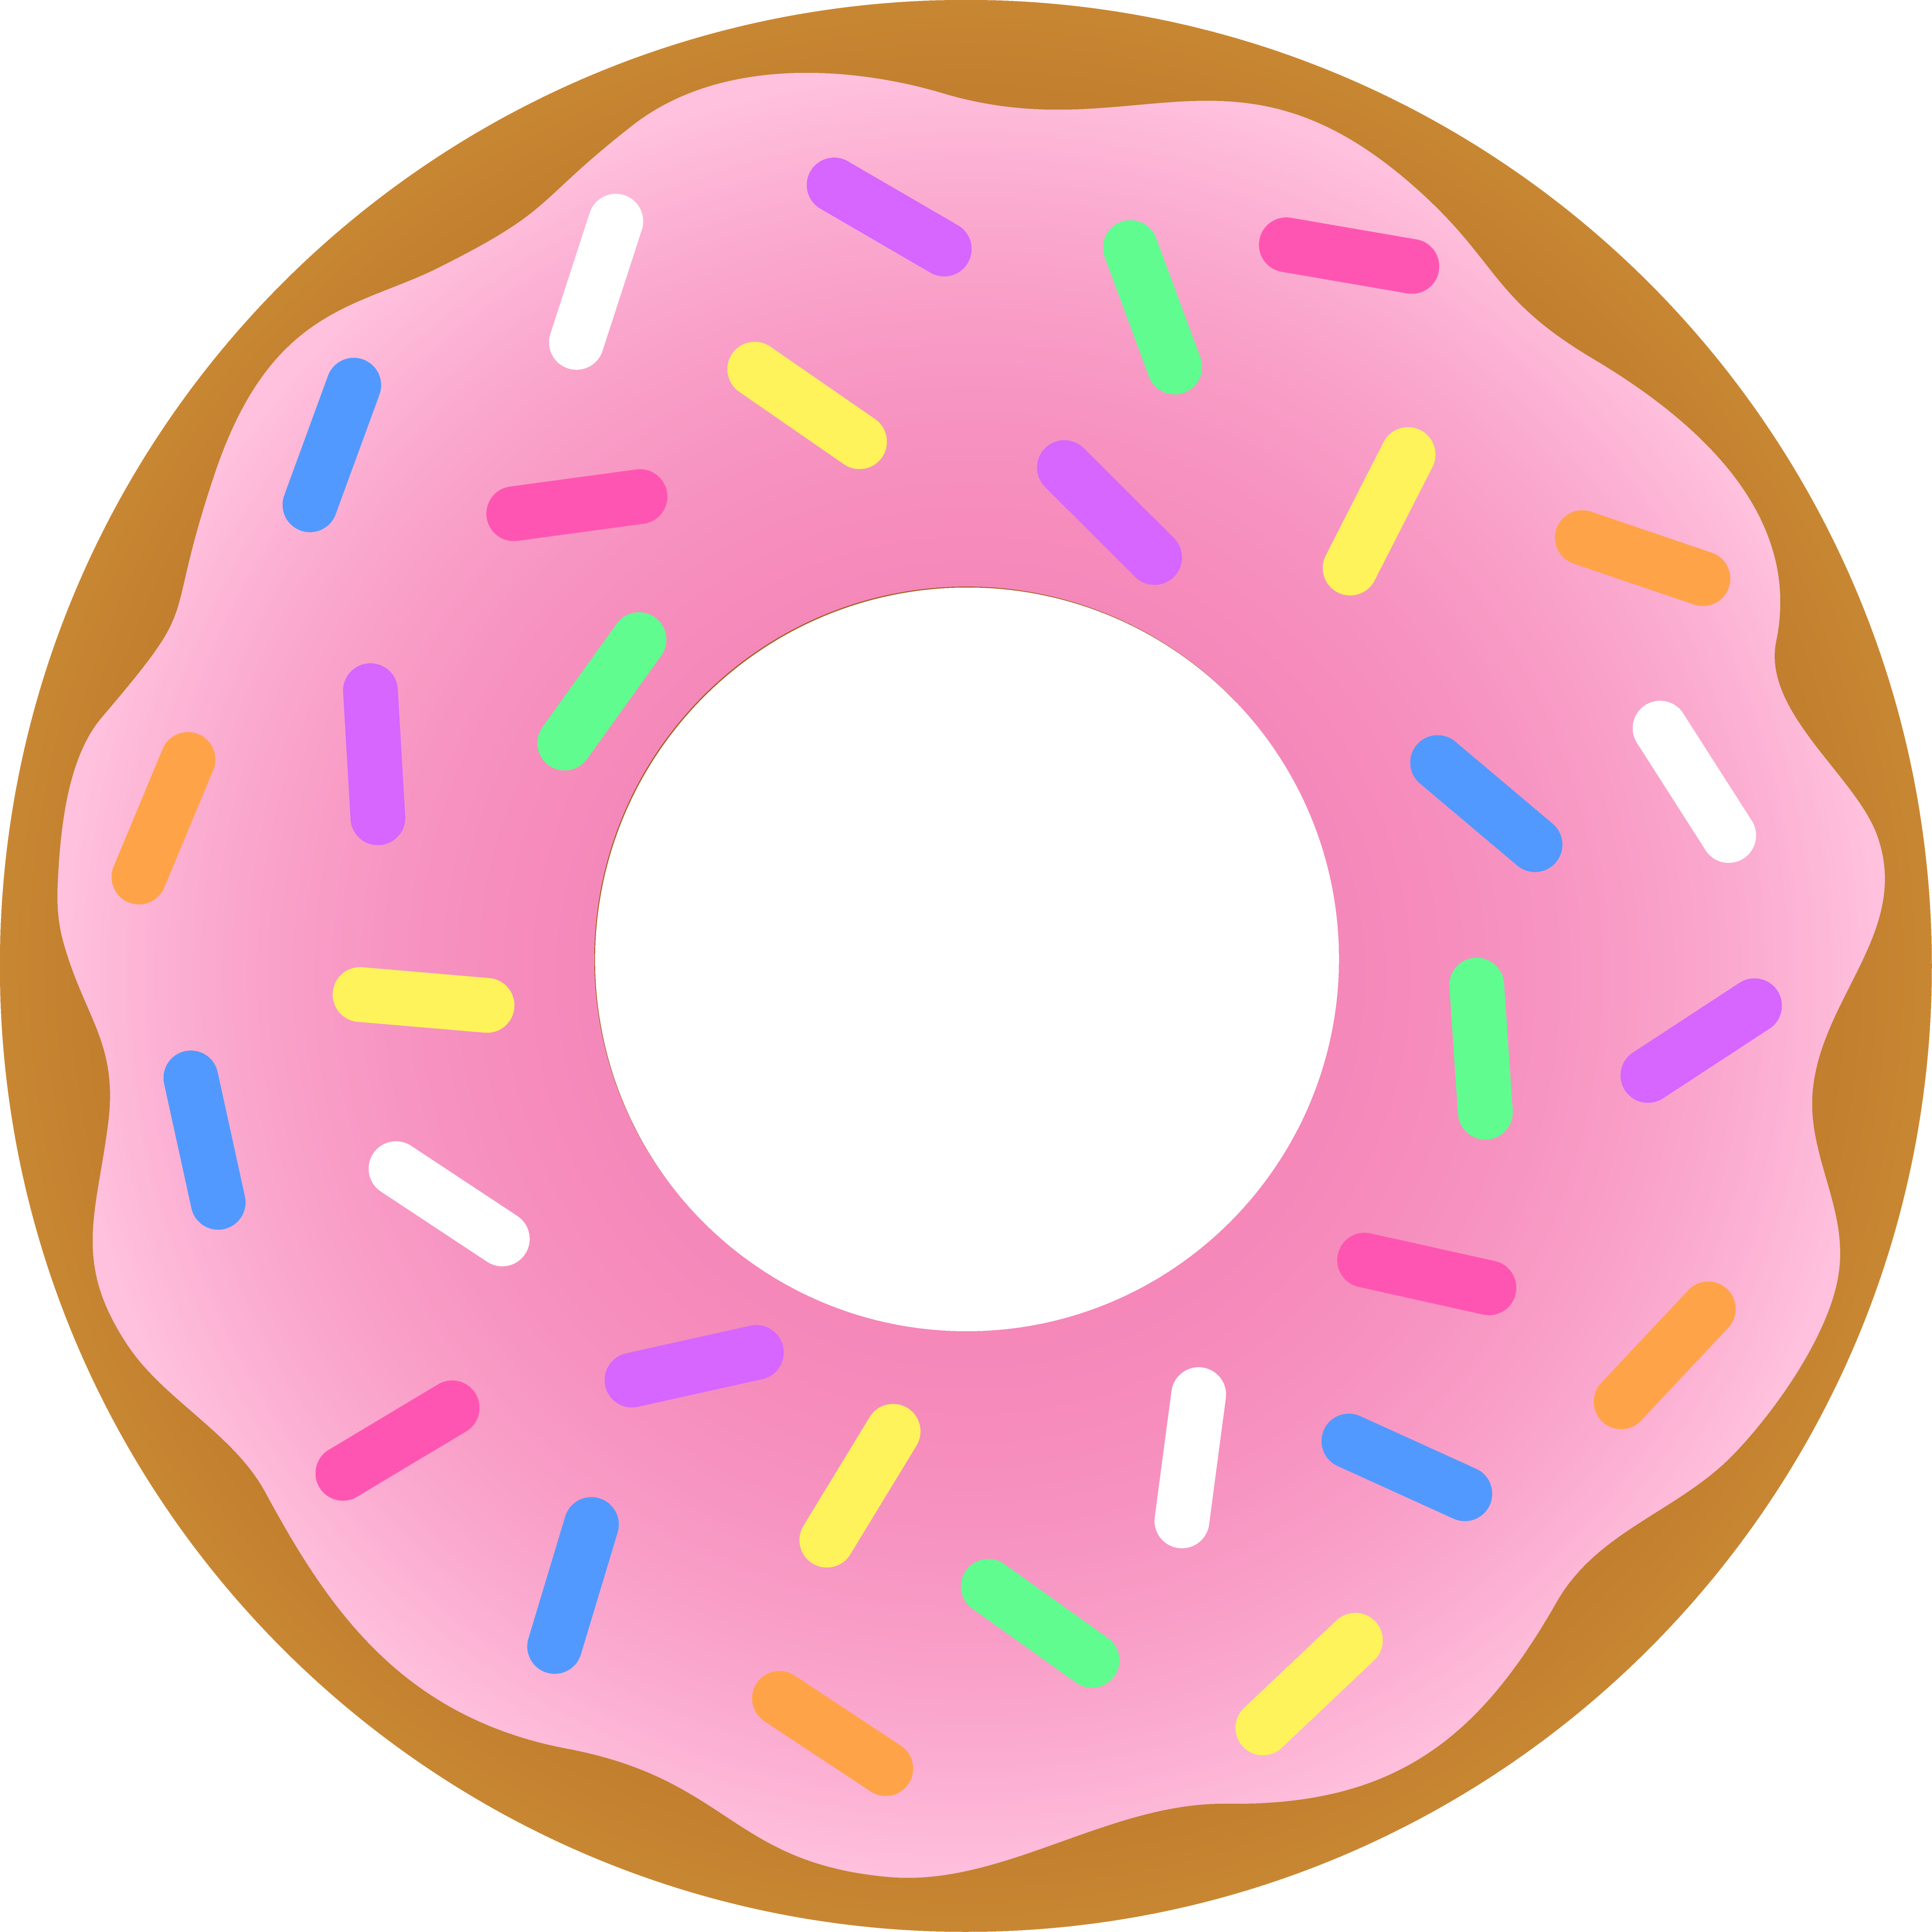 4187x4187 Strawberry Donut With Sprinkles